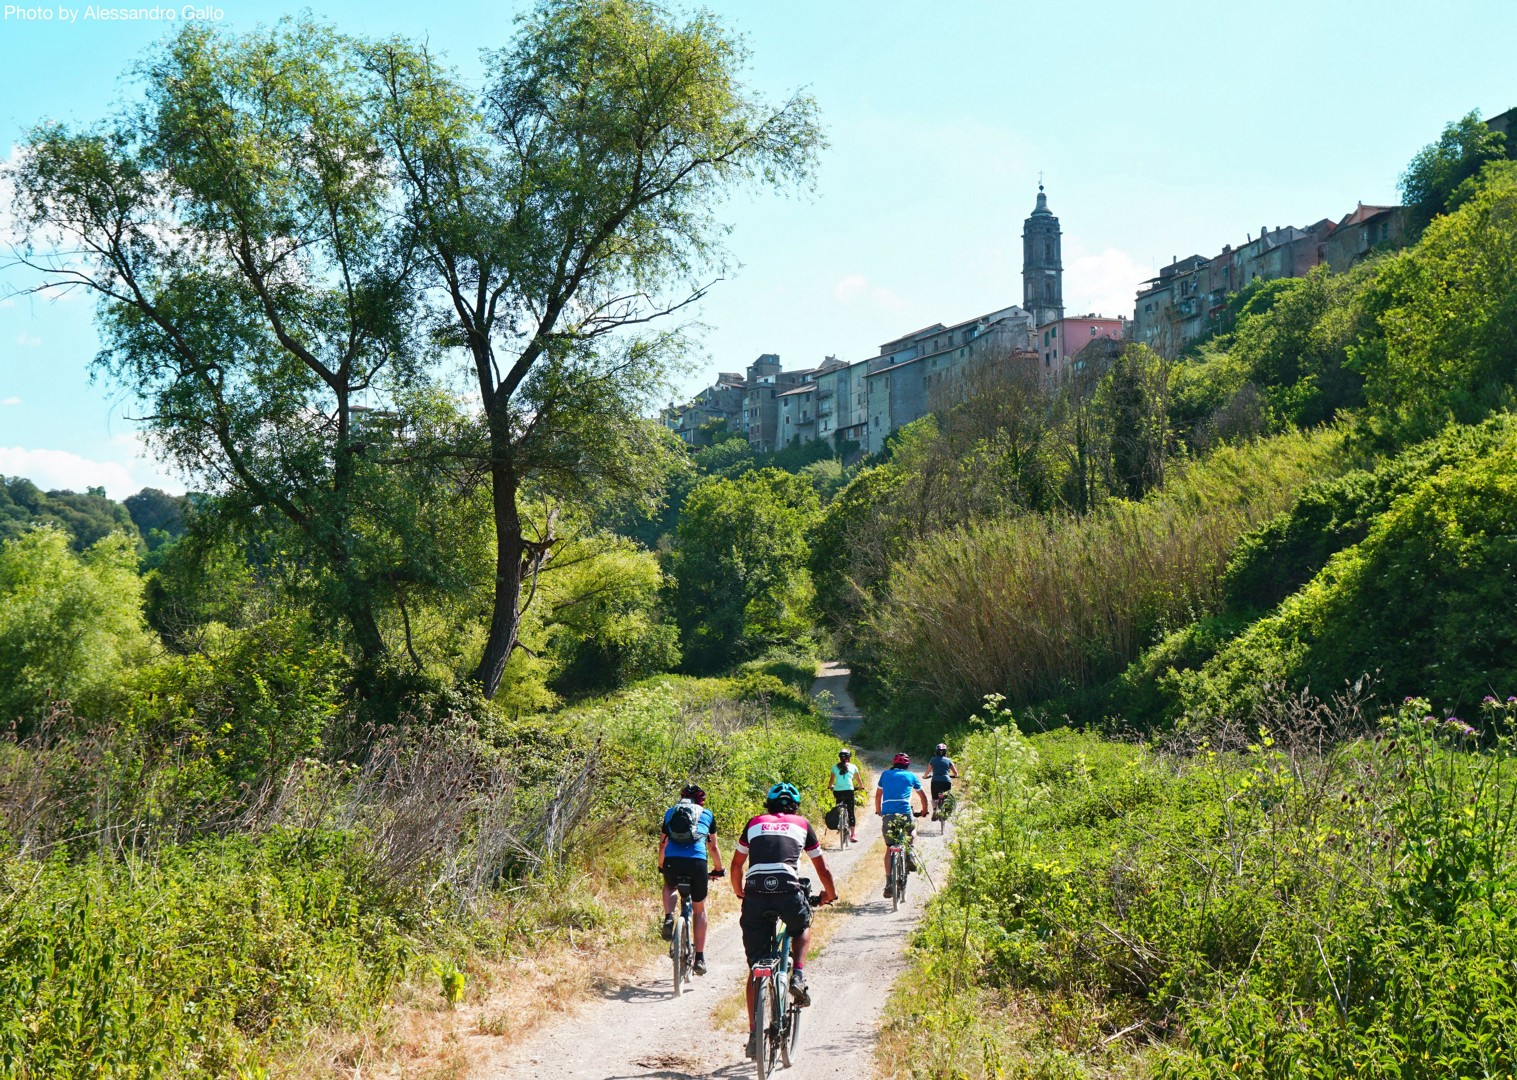 Italy-Via-Francigena-Tuscany-to-Rome-Guided-Leisure-Cycling-Holiday-on-the-way-to-rome - Italy - Via Francigena (Tuscany to Rome) - Guided Leisure Cycling Holiday - Italia Leisure and Family Cycling